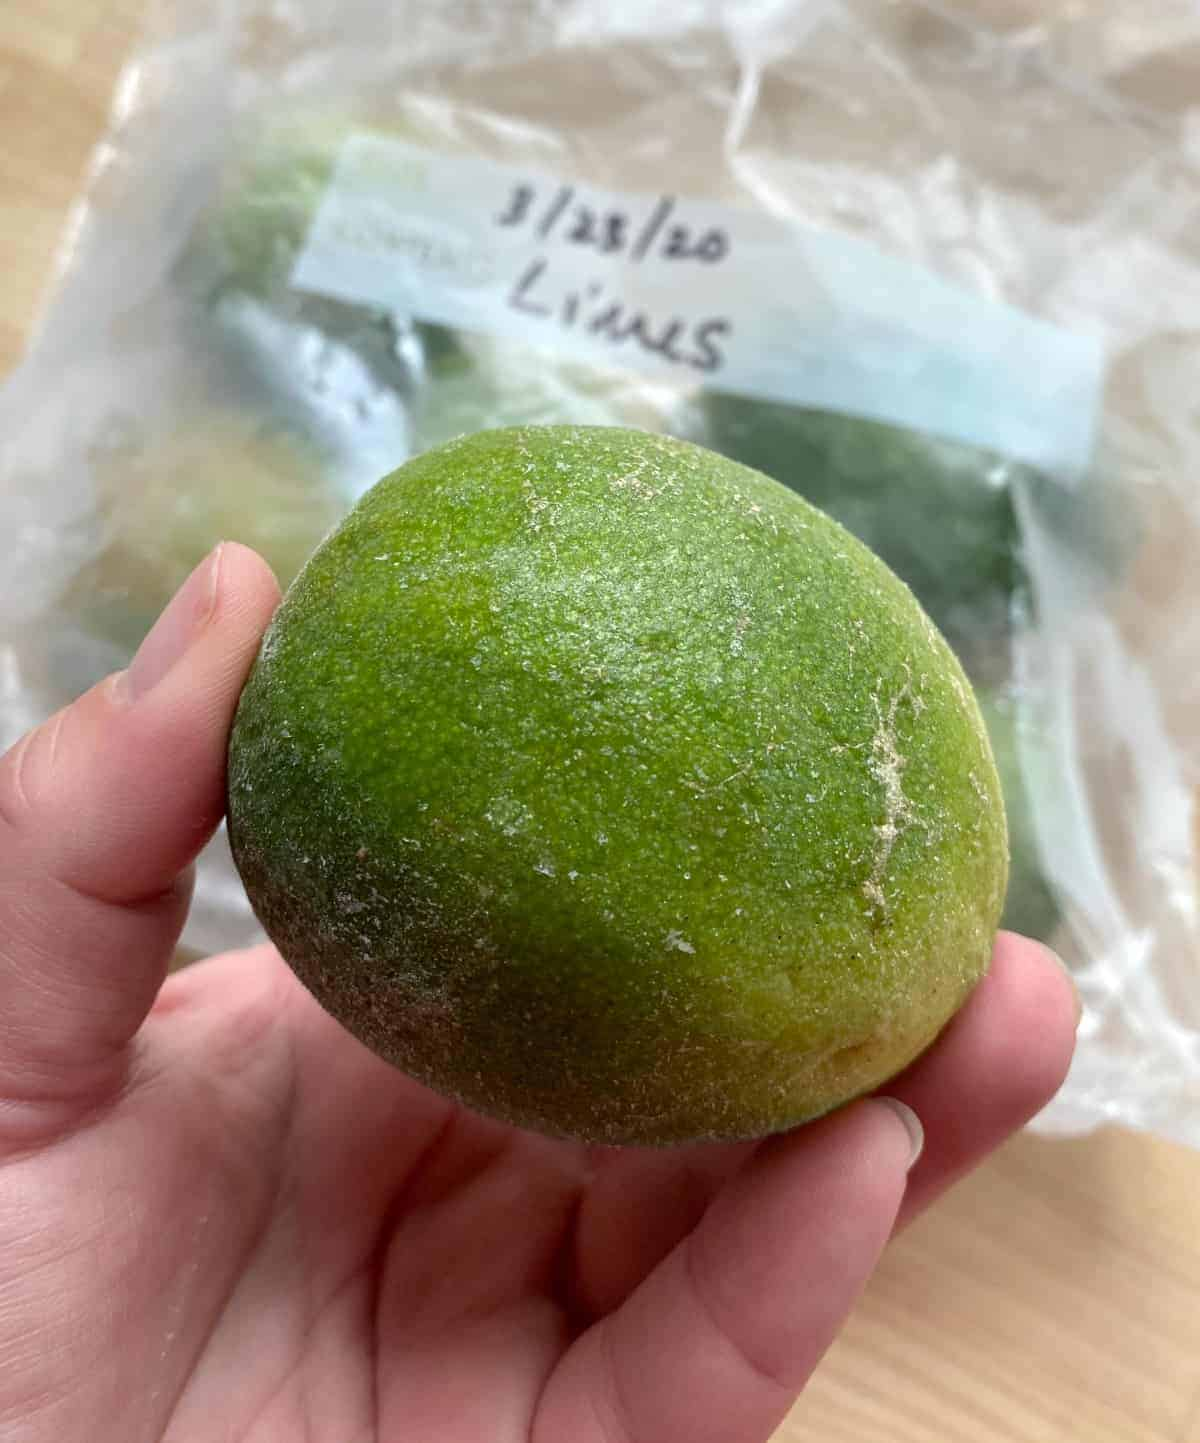 A hand holding a frozen lime.